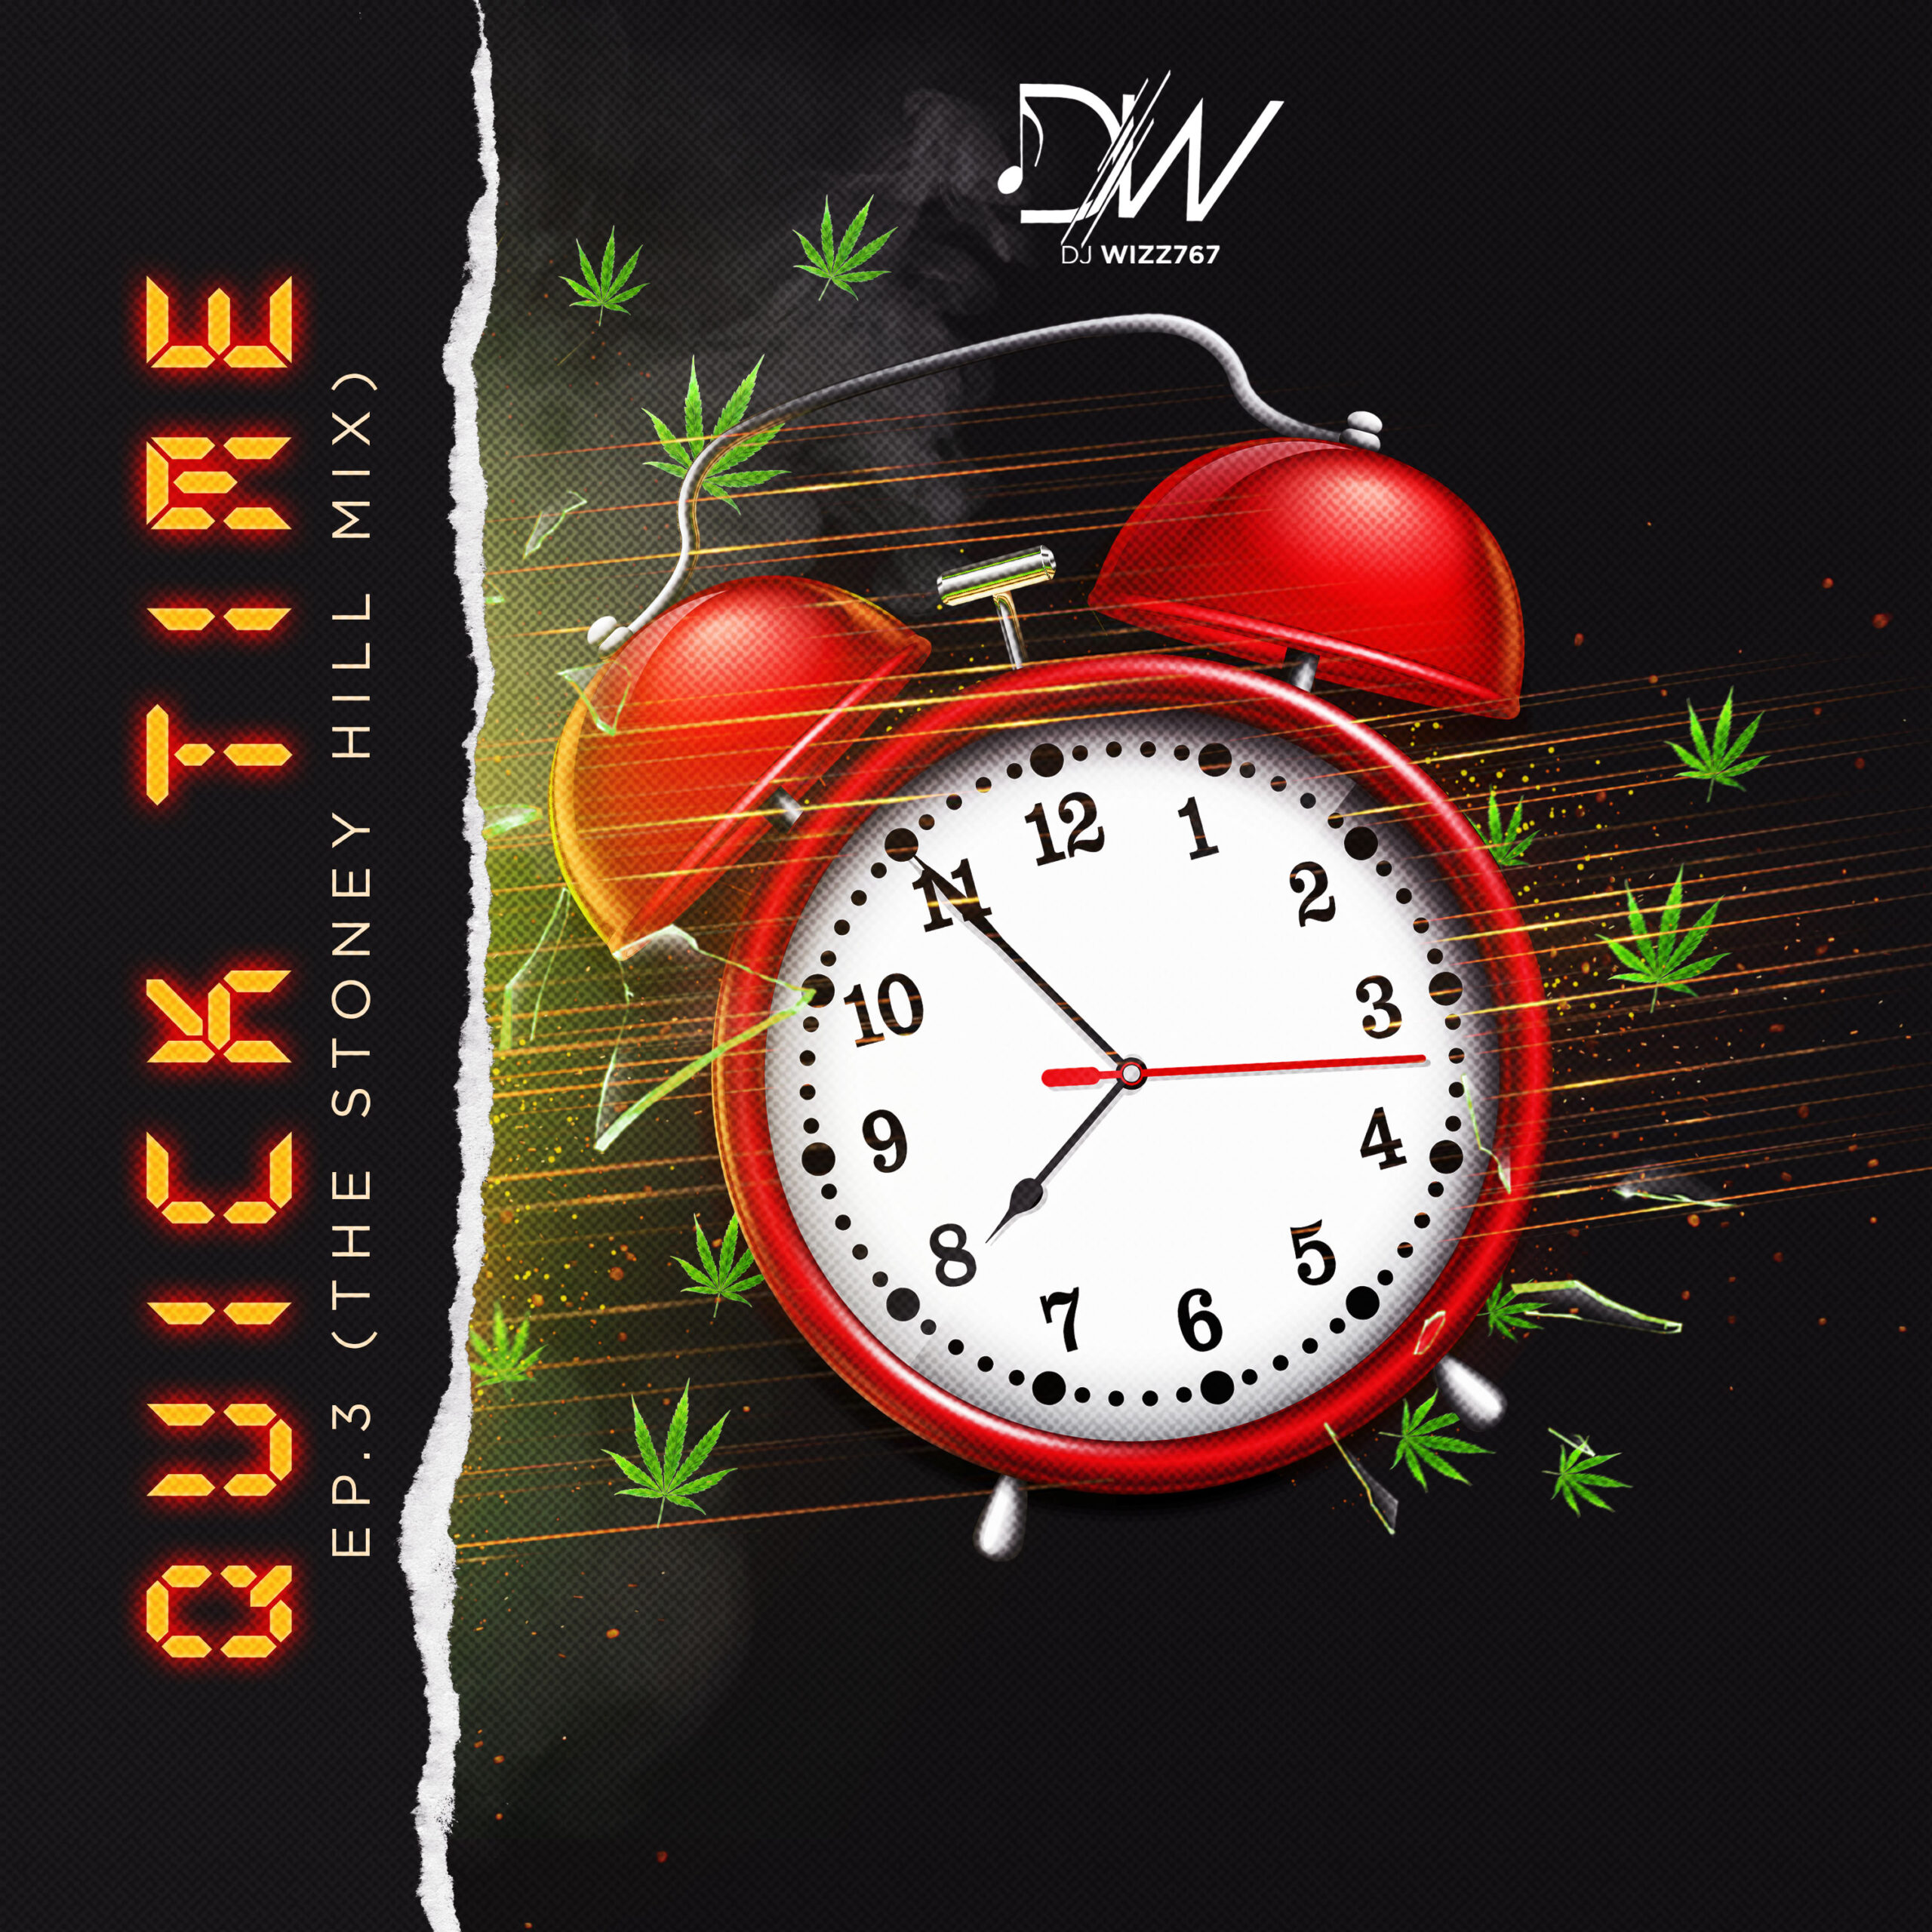 You are currently viewing Dj Wizz767 – QUICK TIME EP.3 (THE STONEY HILL MIX)